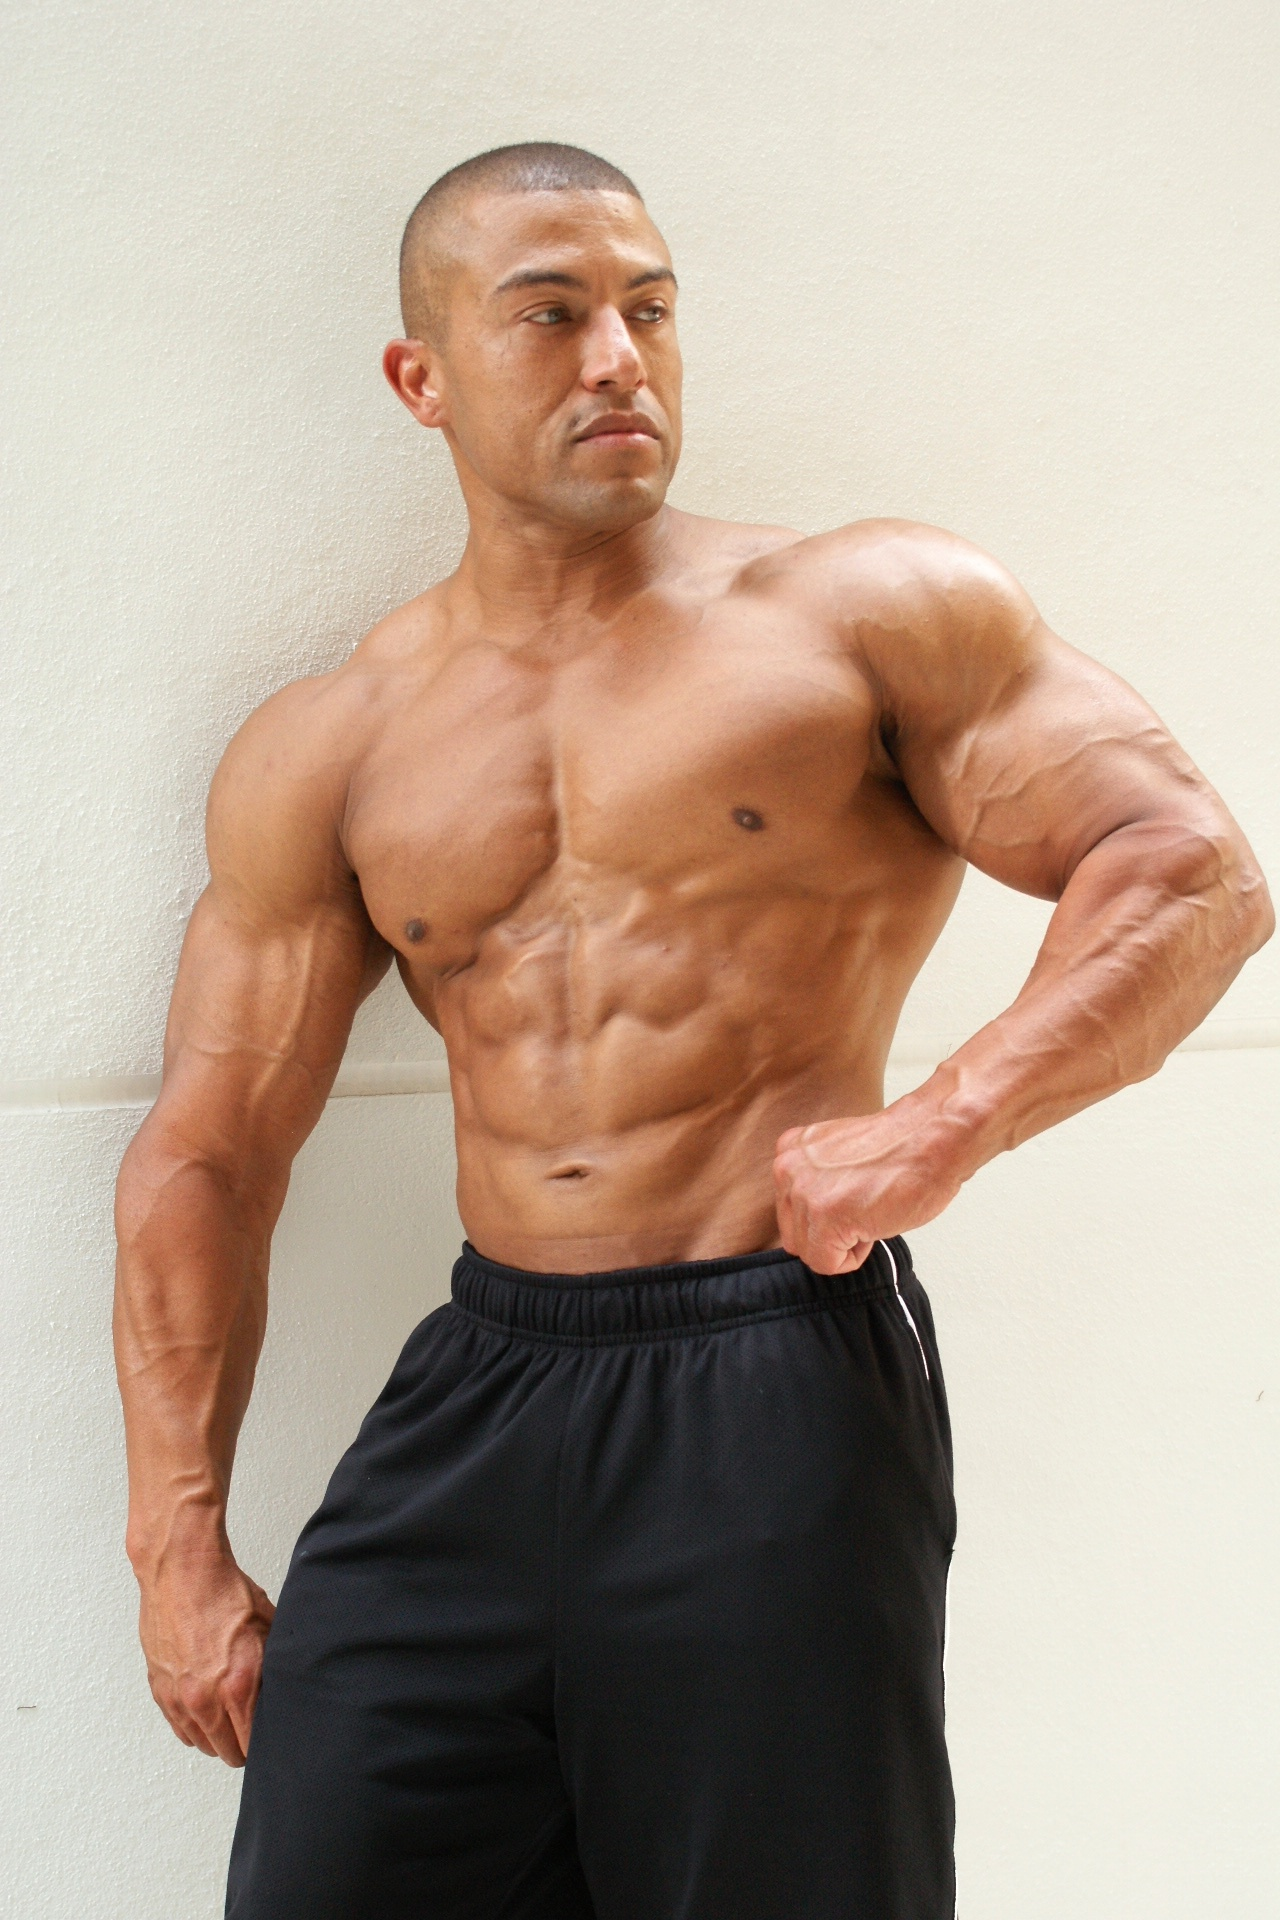 Can HGH Really Help You Grow Muscle, Burn Fat, and Delay Ageing